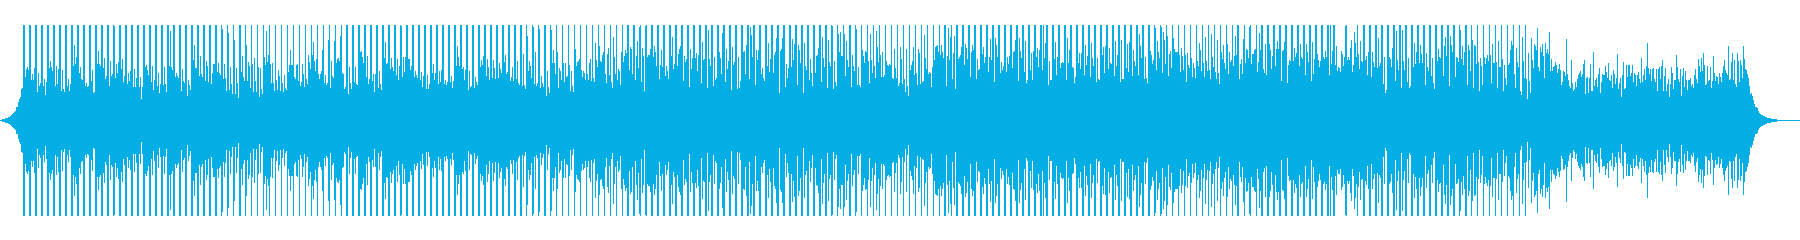 High Tech Corporation's reproduced waveform